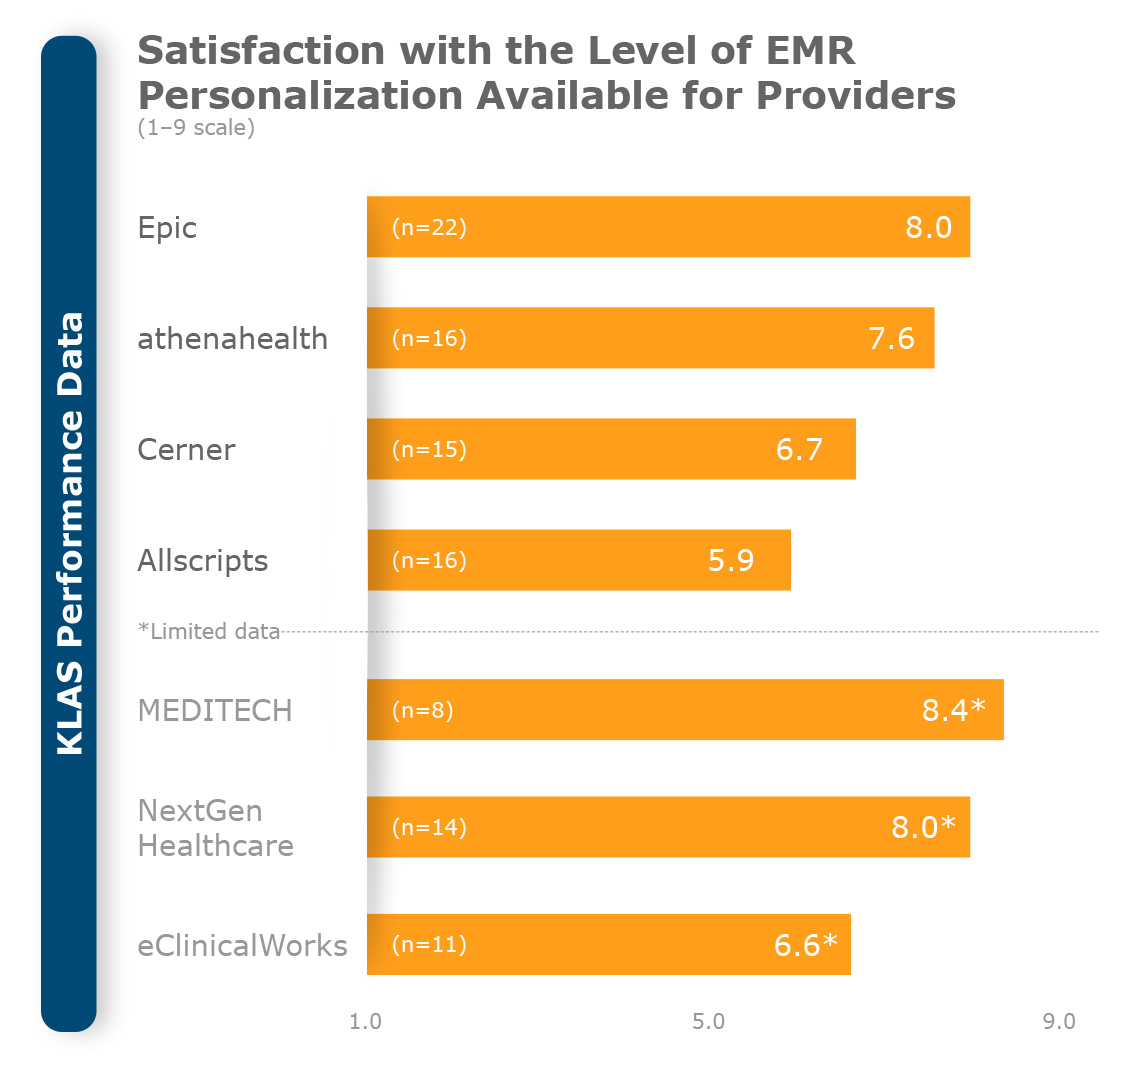 KLAS Performance Data - Satisfaction with the level of EMR personalization available for providers (MEDITECH numbers in focus)